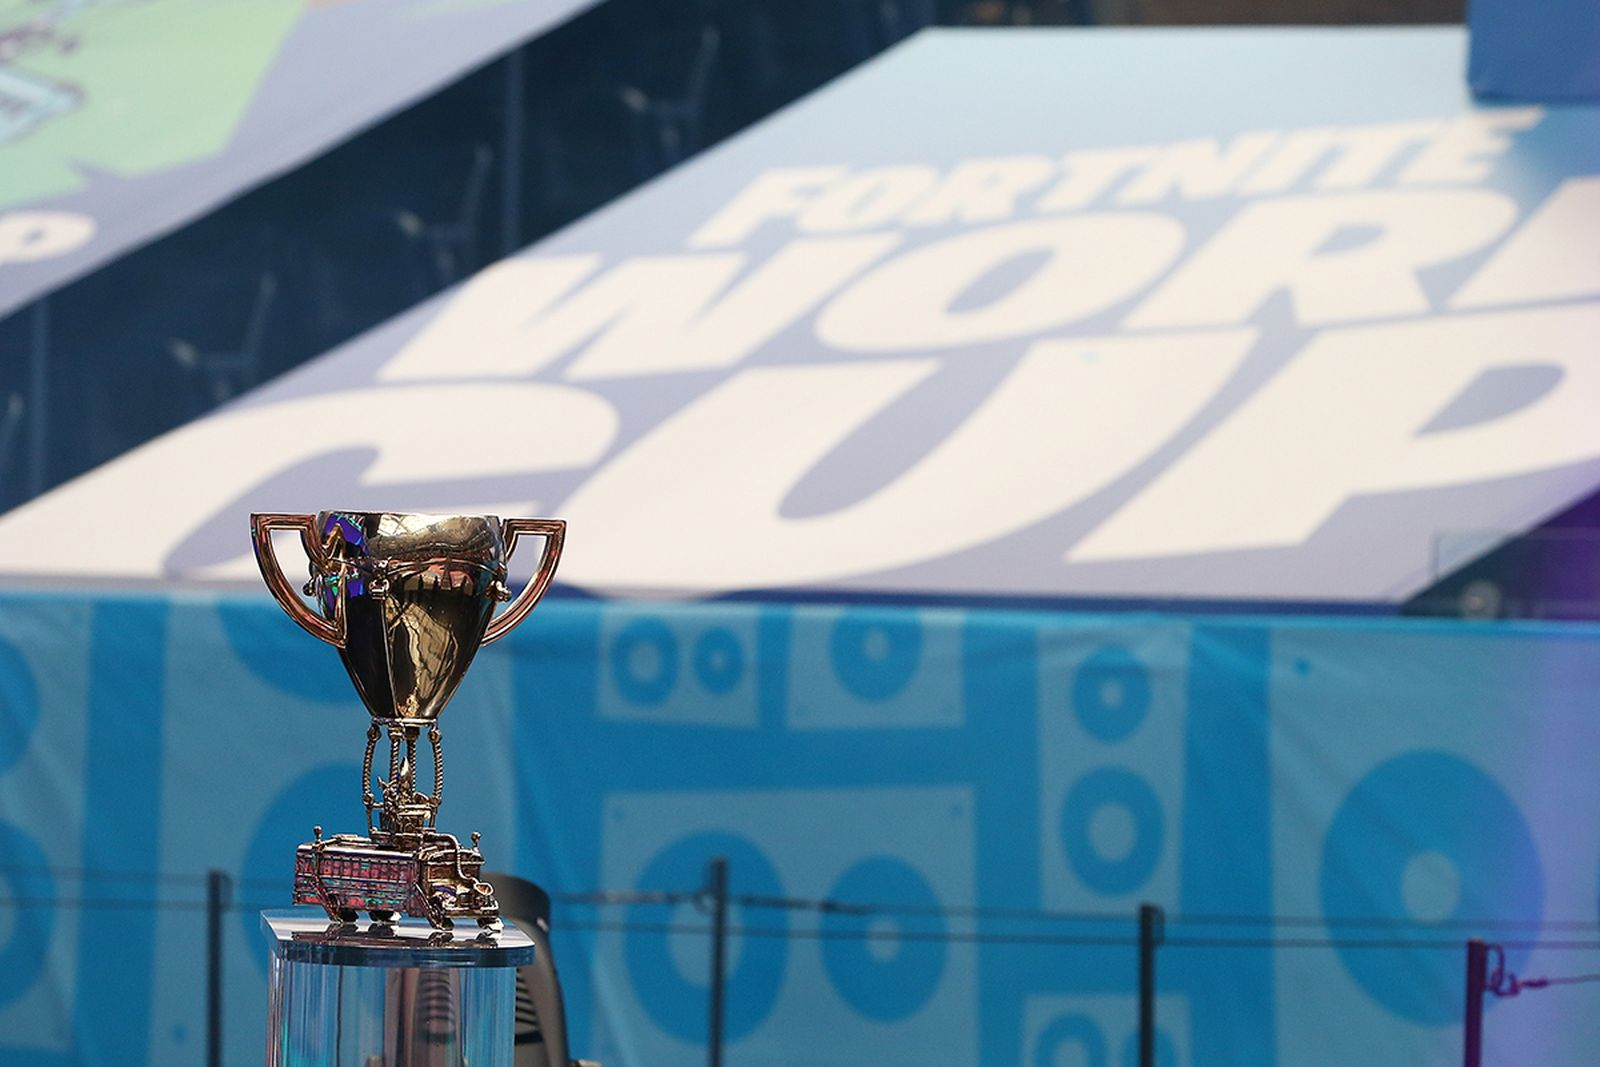 The Fortnite World Cup trophy is seen during the Final round at Arthur Ashe Stadium